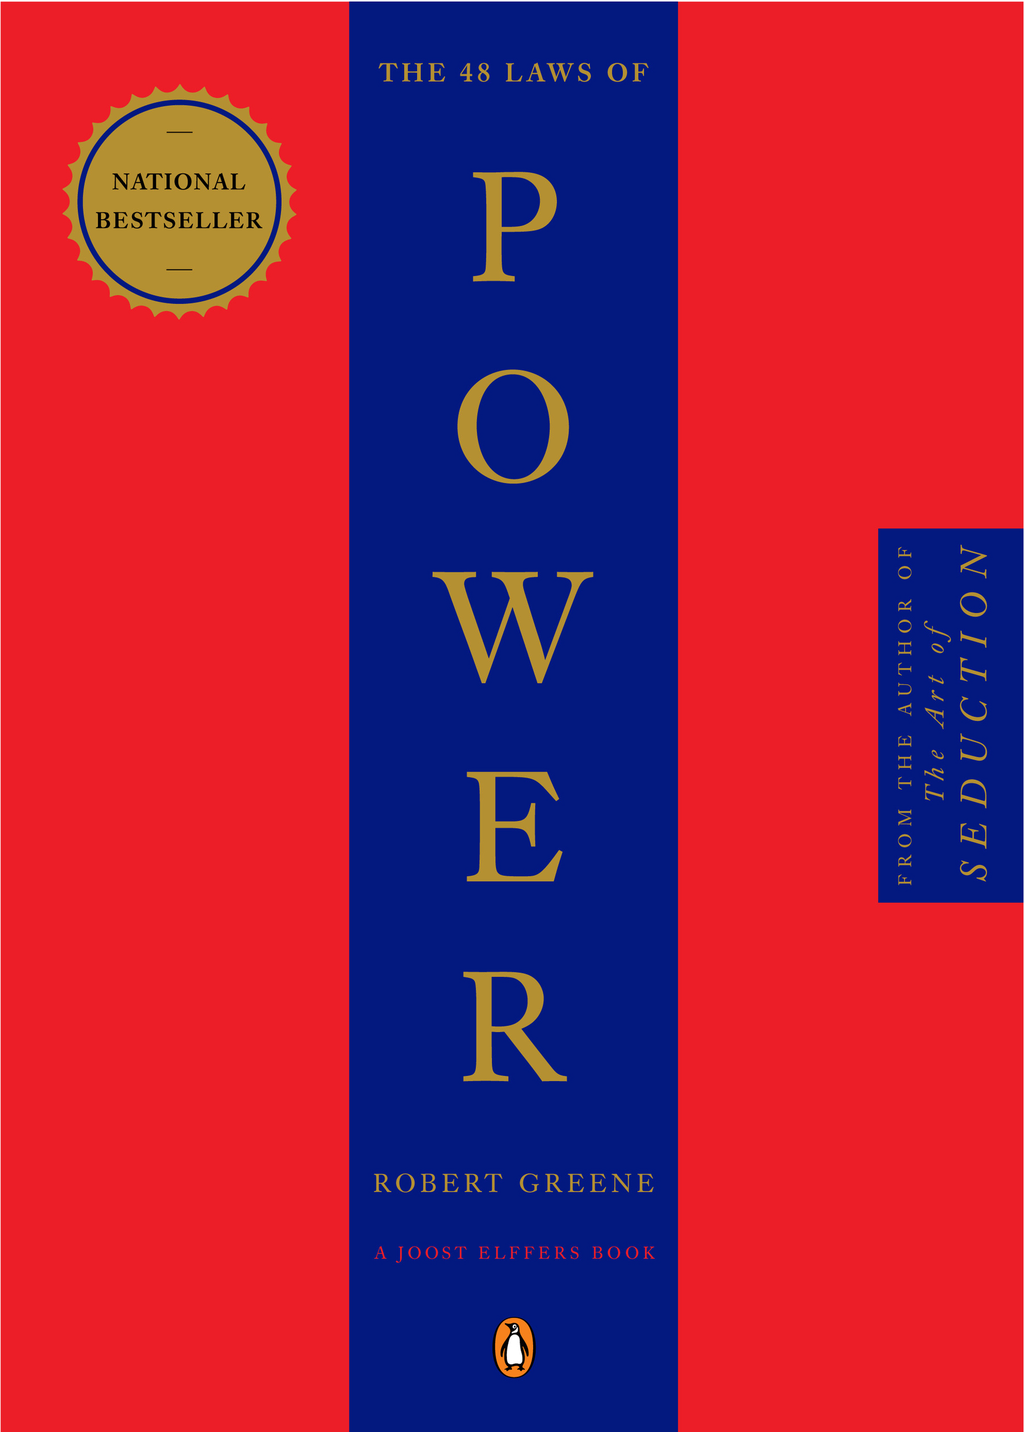 The 48 Laws of Power